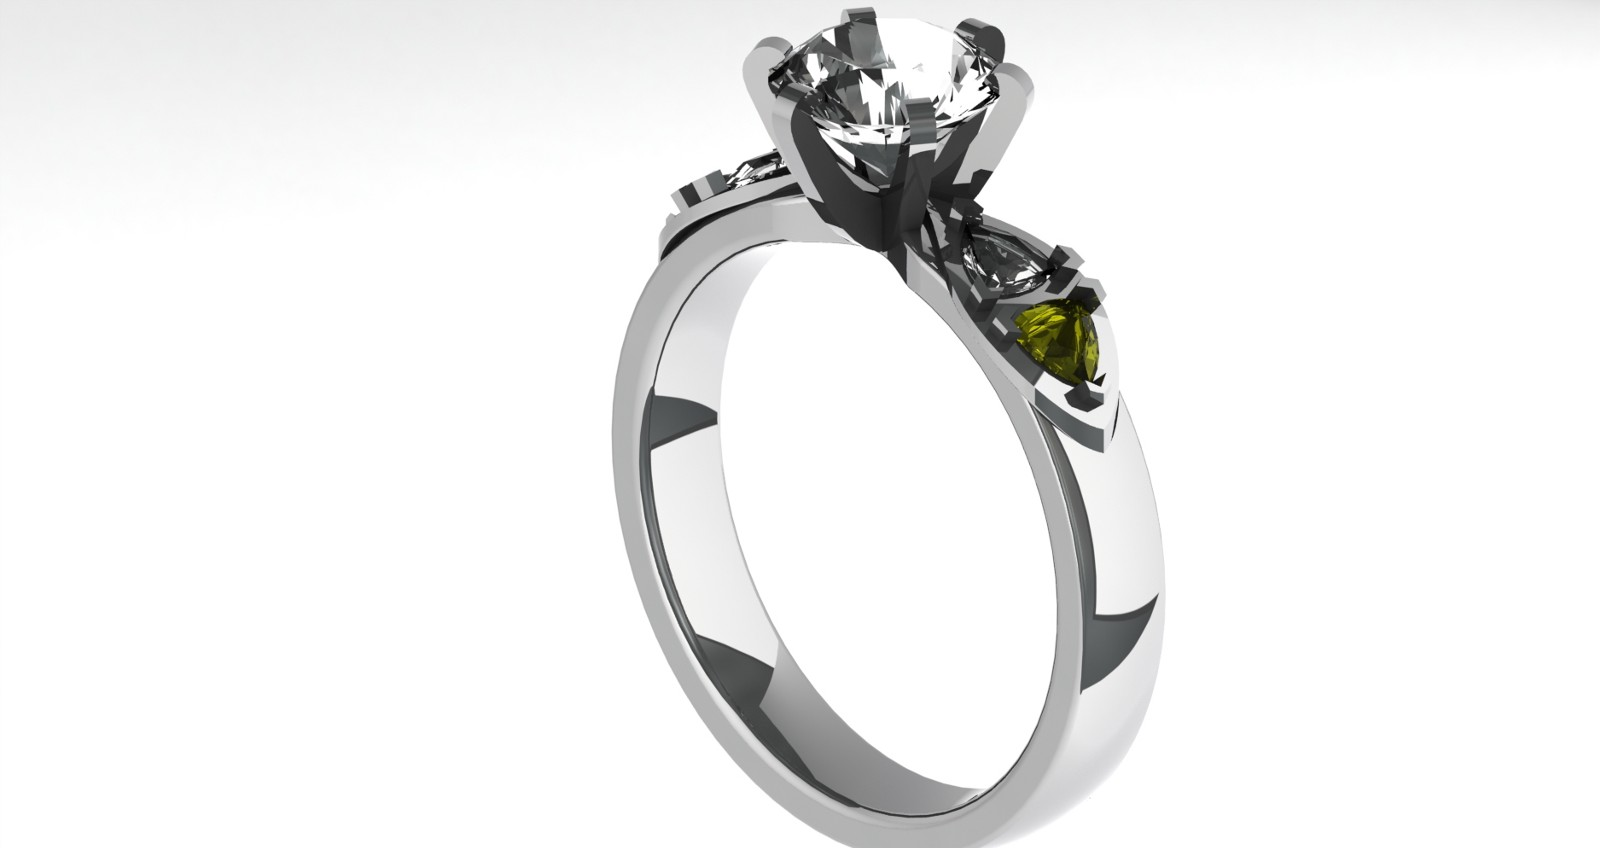 Technical Memorandum Of My 3d Printed Engagement Ring Project Walet Black Soap Original Box Diamond Hmm Why Not Lets Just Try A Render Test For Historical Purposes